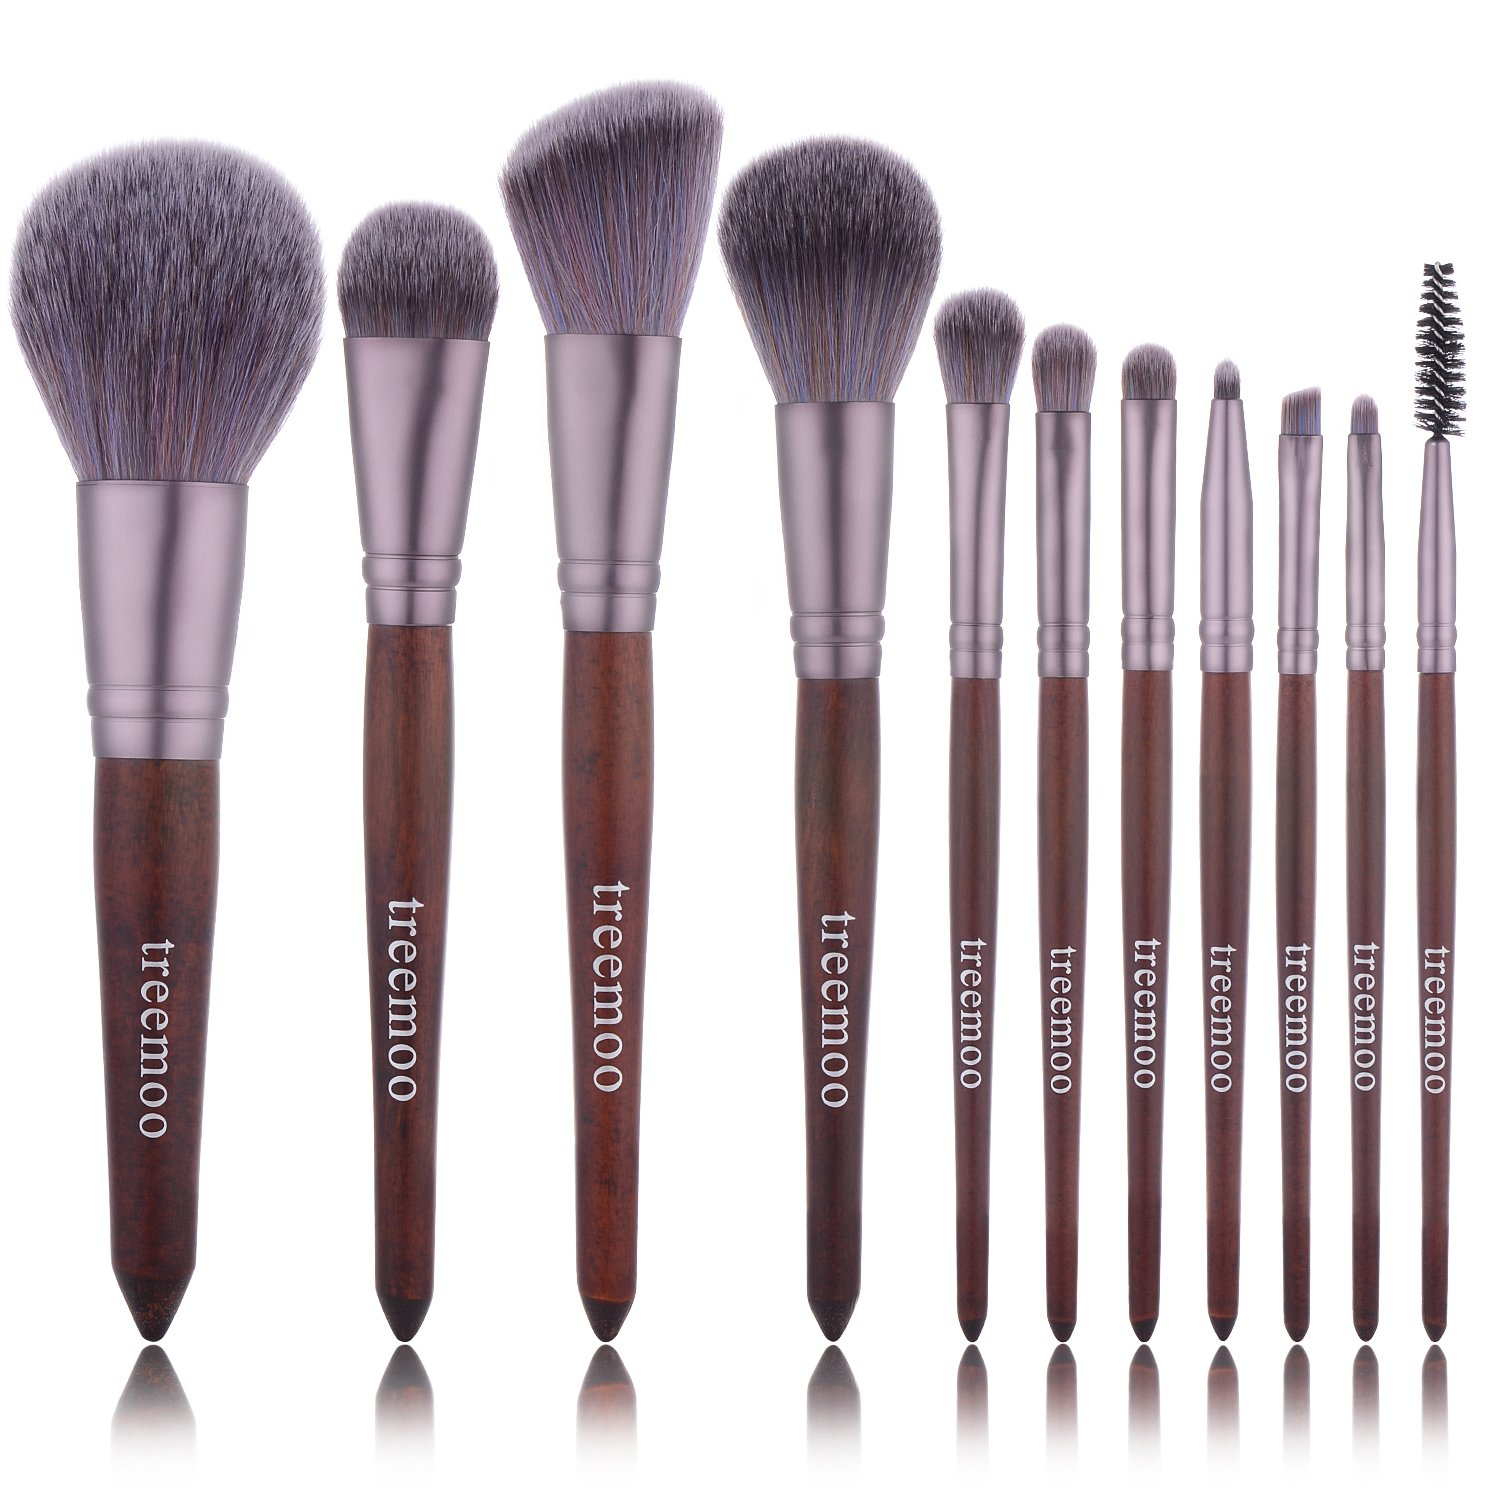 Makeup Brush Set Treemoo 11pcs Professional Wooden Handle Makeup Brushes Soft and Thick Bristles with Foundation Face Eyebrow Eye Shadow Brush